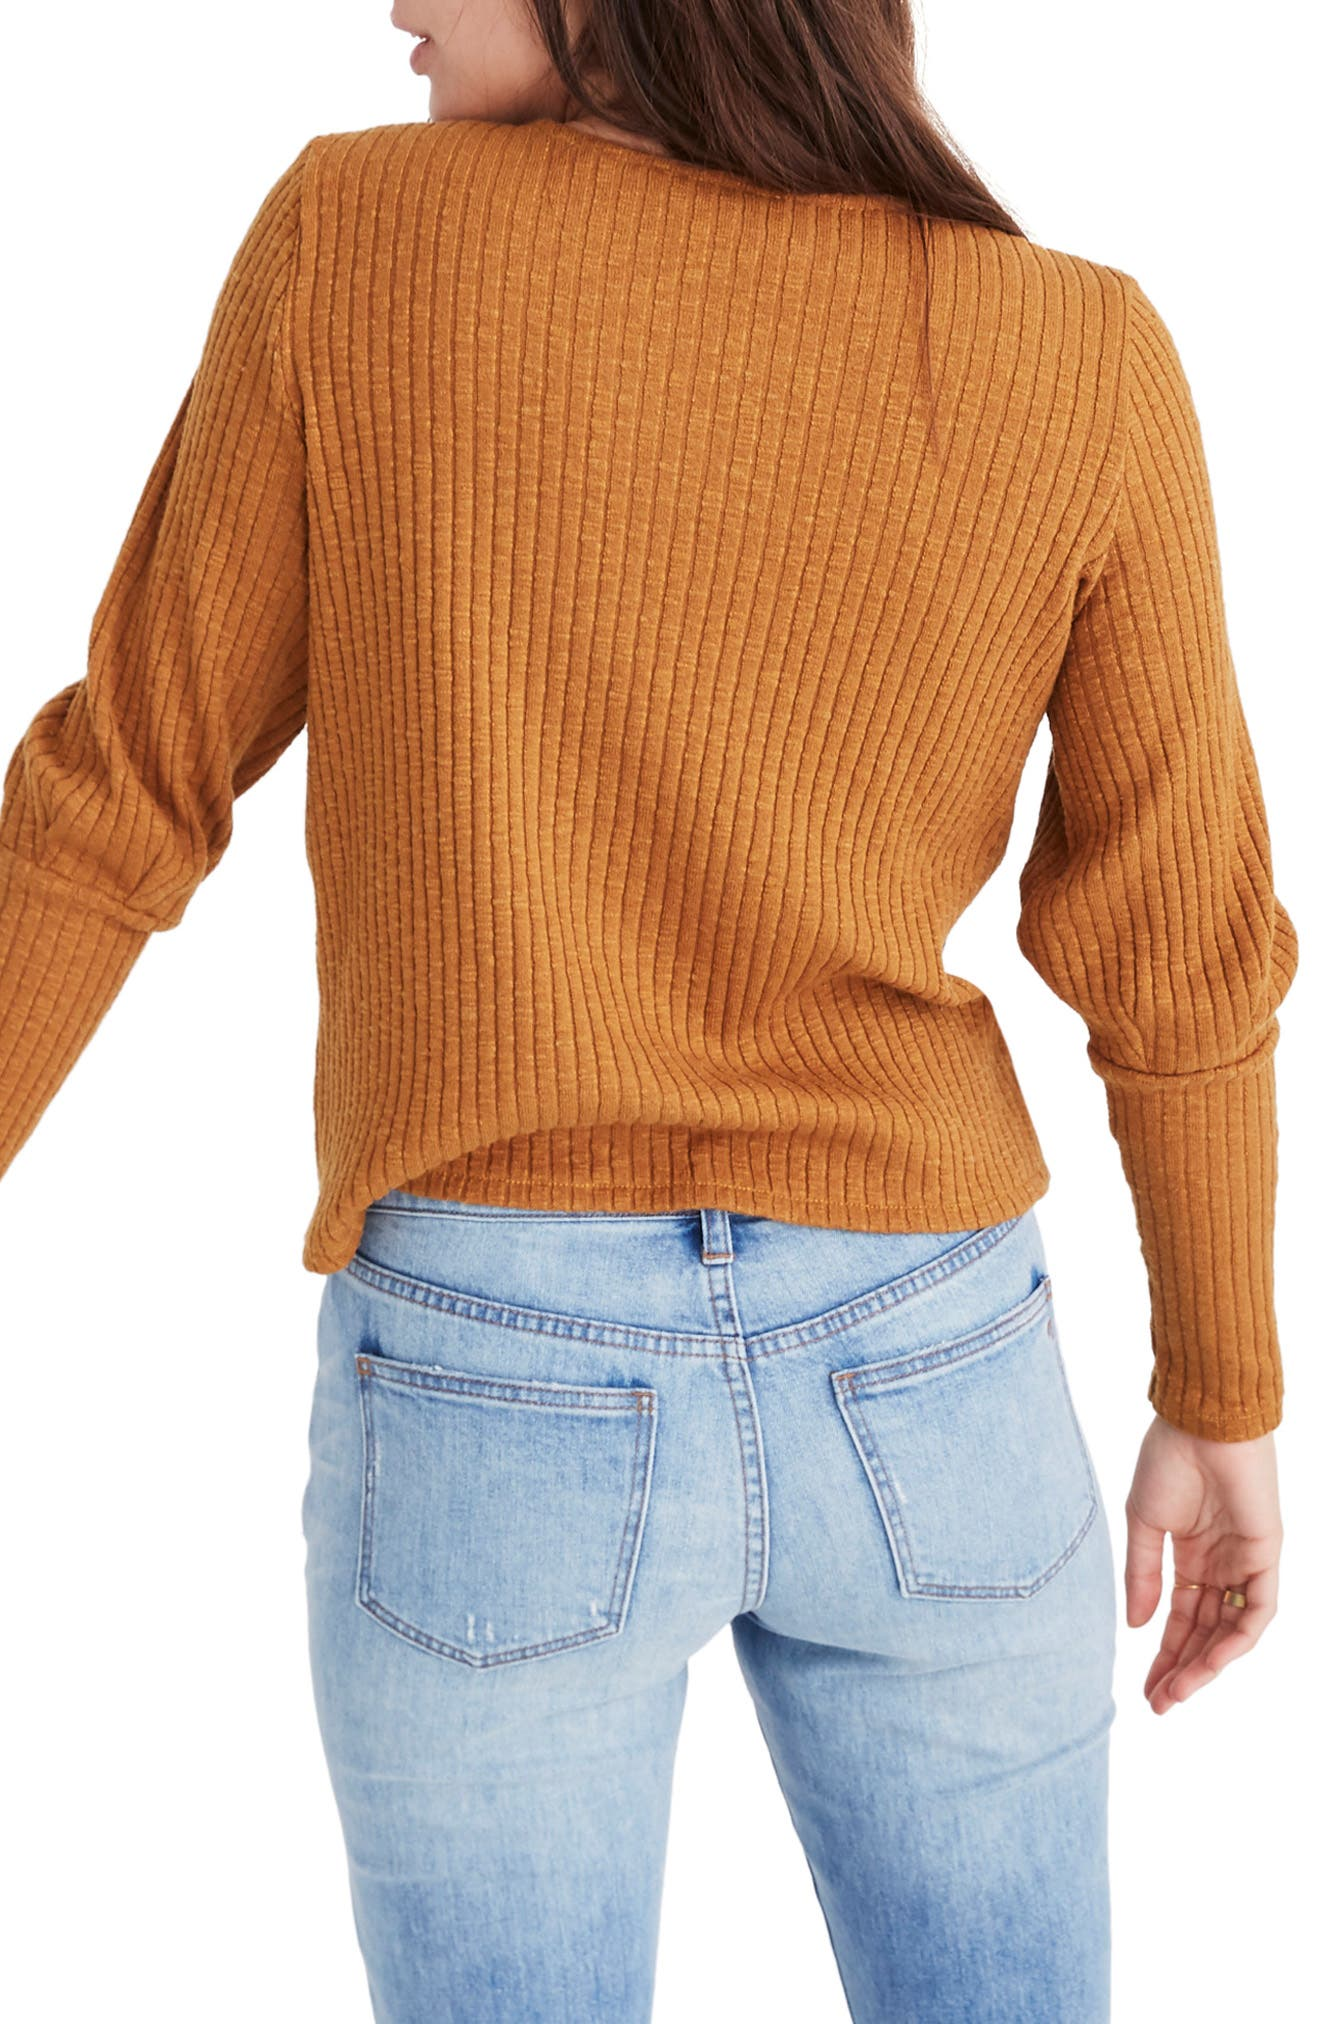 MADEWELL, Ribbed Bubble Sleeve Top, Alternate thumbnail 2, color, 200